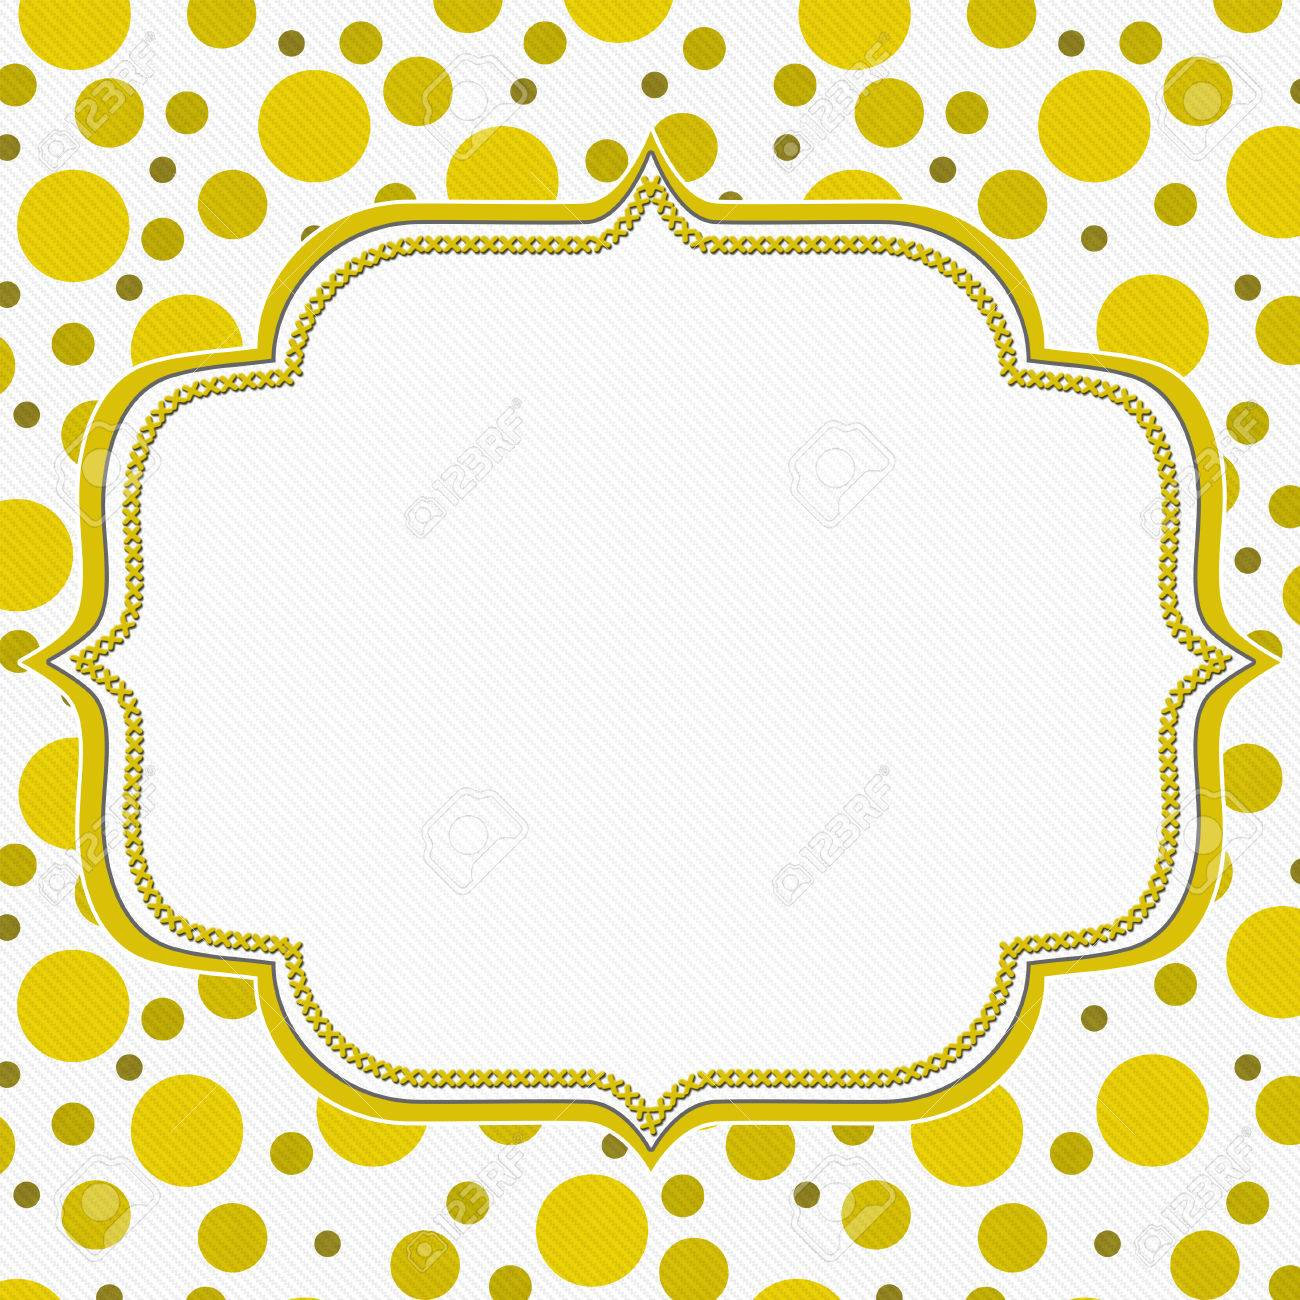 Yellow And White Polka Dot Frame With Embroidery Stitches Background ...